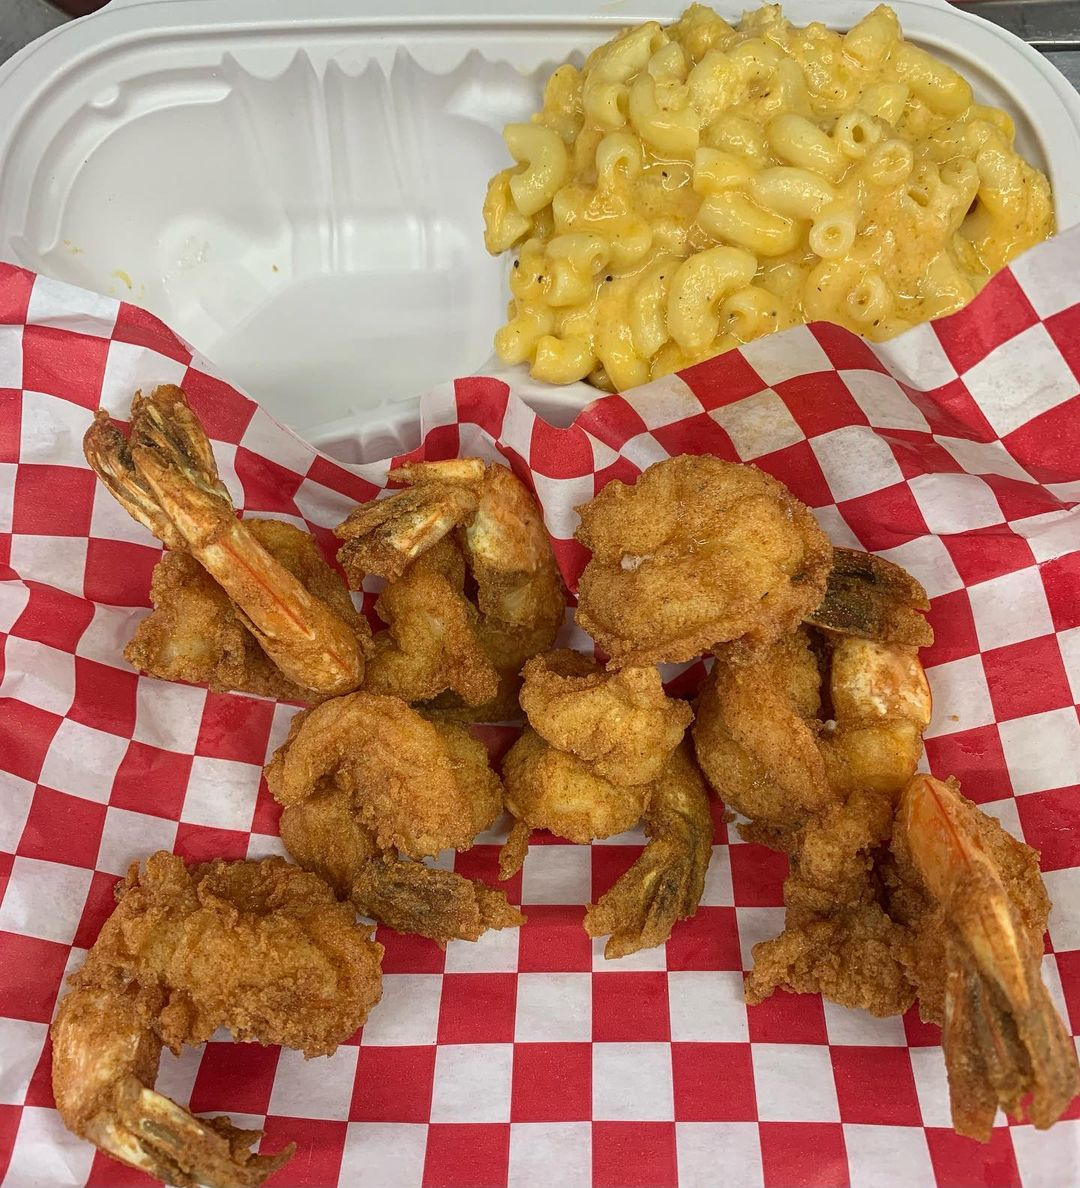 NYC Soul Food Truck Catering